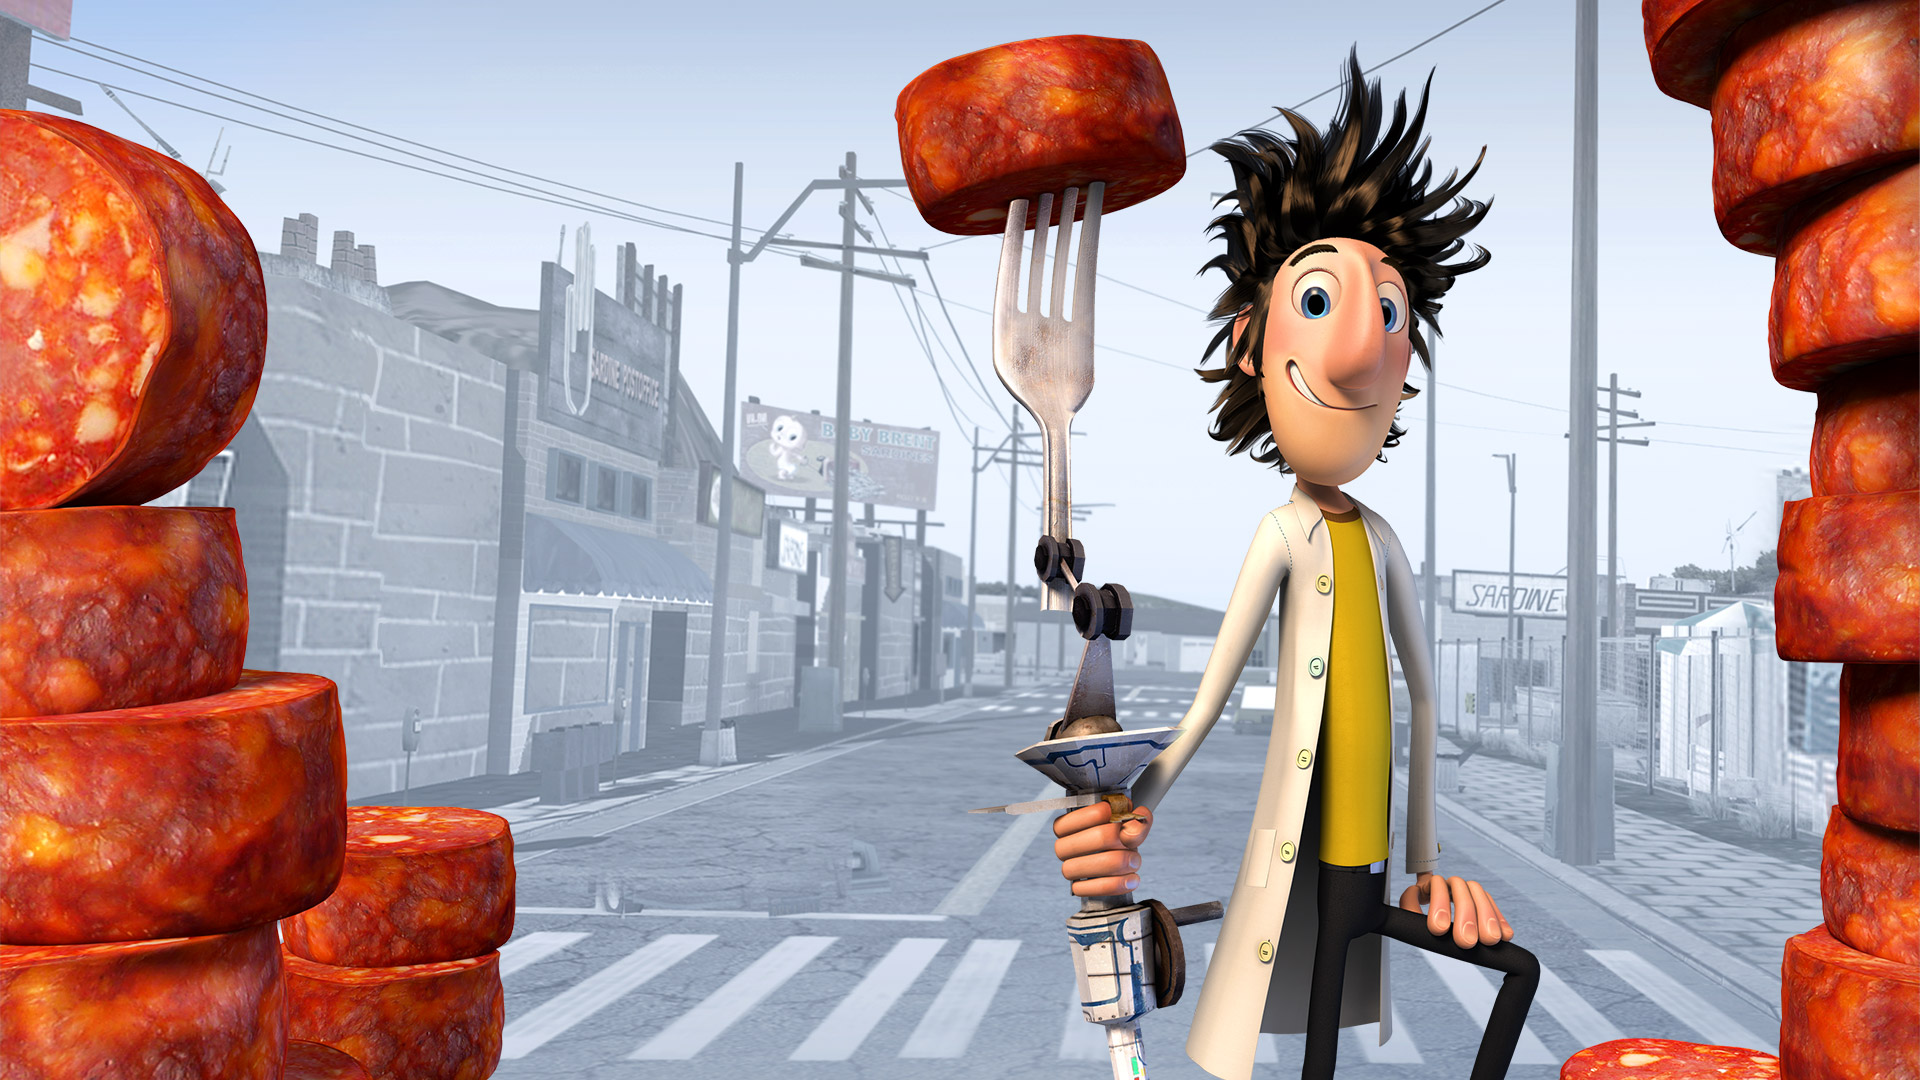 Cloudy with a Chance of Meatballs Wallpaper in 1920x1080